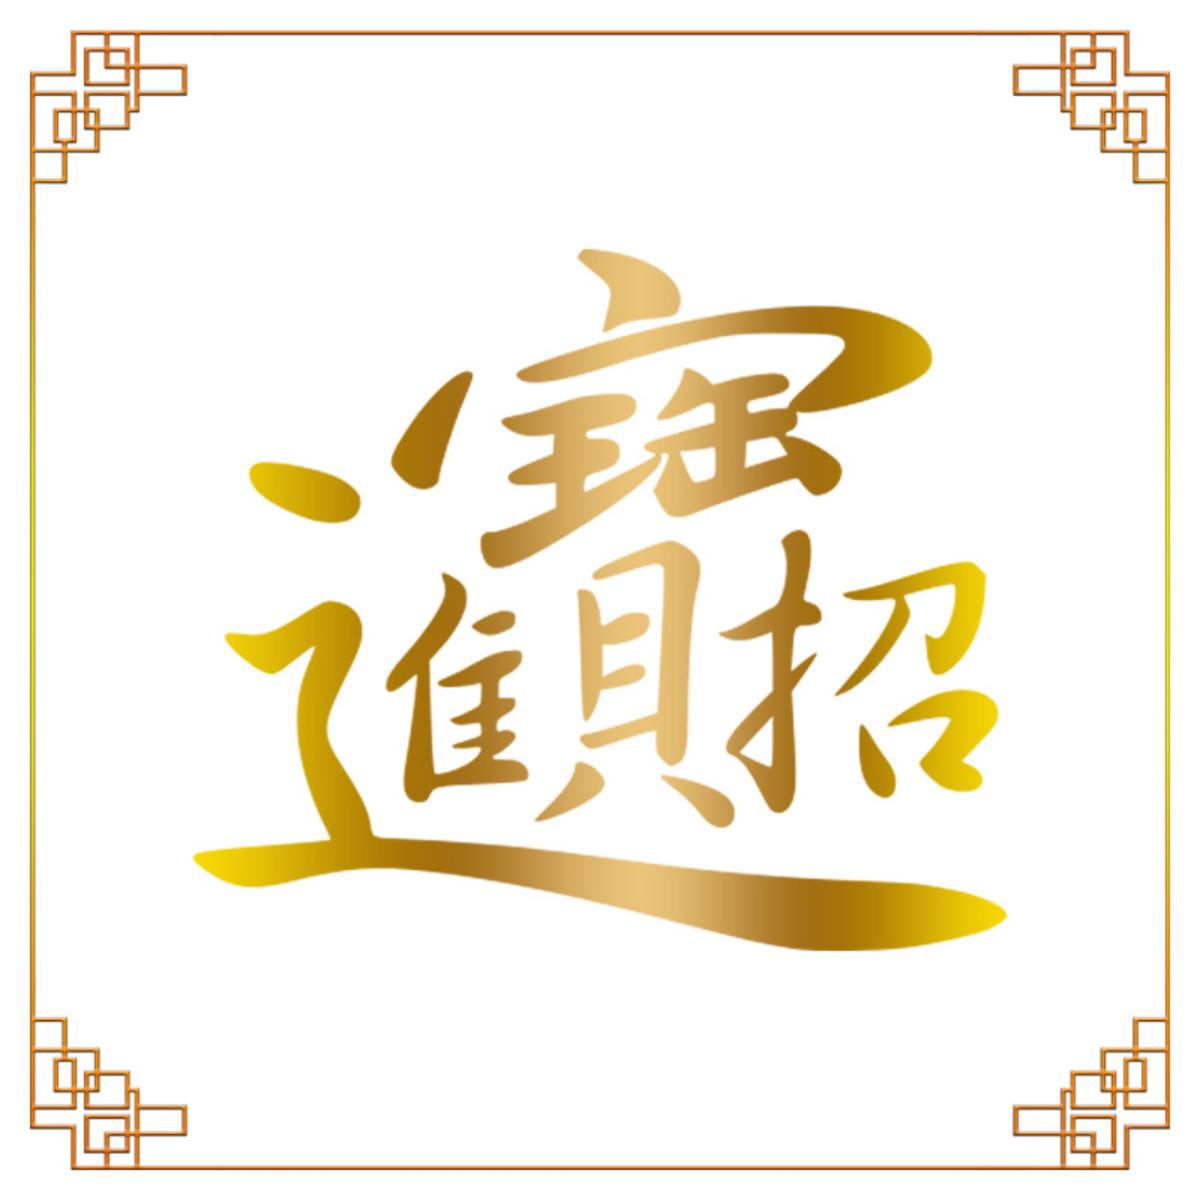 Zhao Cai Jin Bao is an amagram for the beckoning of wealth and treasures.